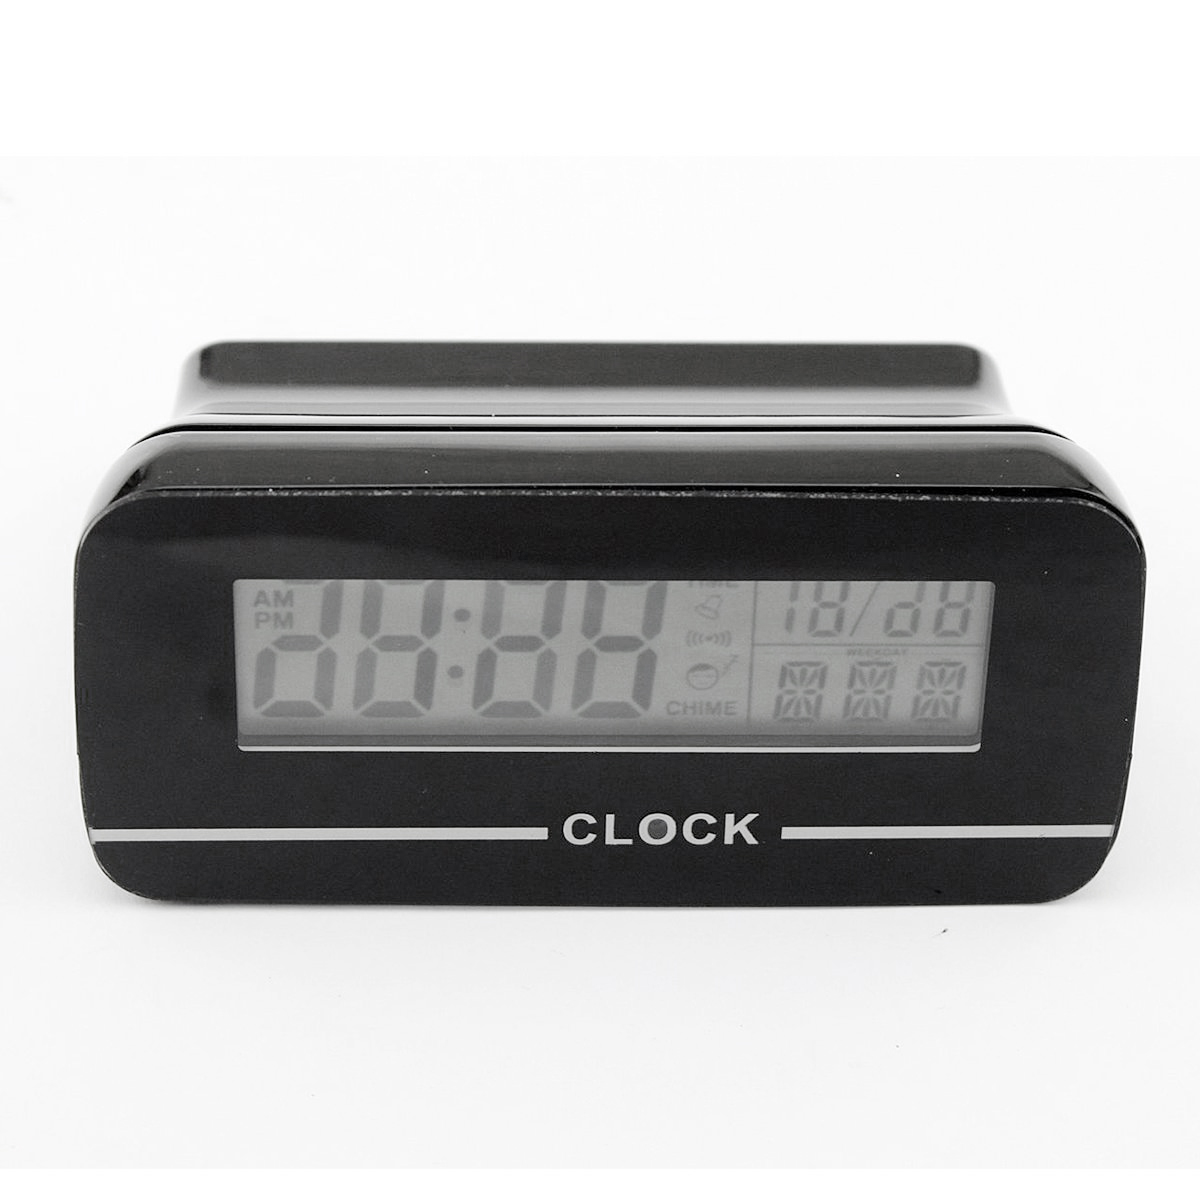 Wifi Ip Mini Clock Dvr Alarm Wireless Camera Spy Hidden